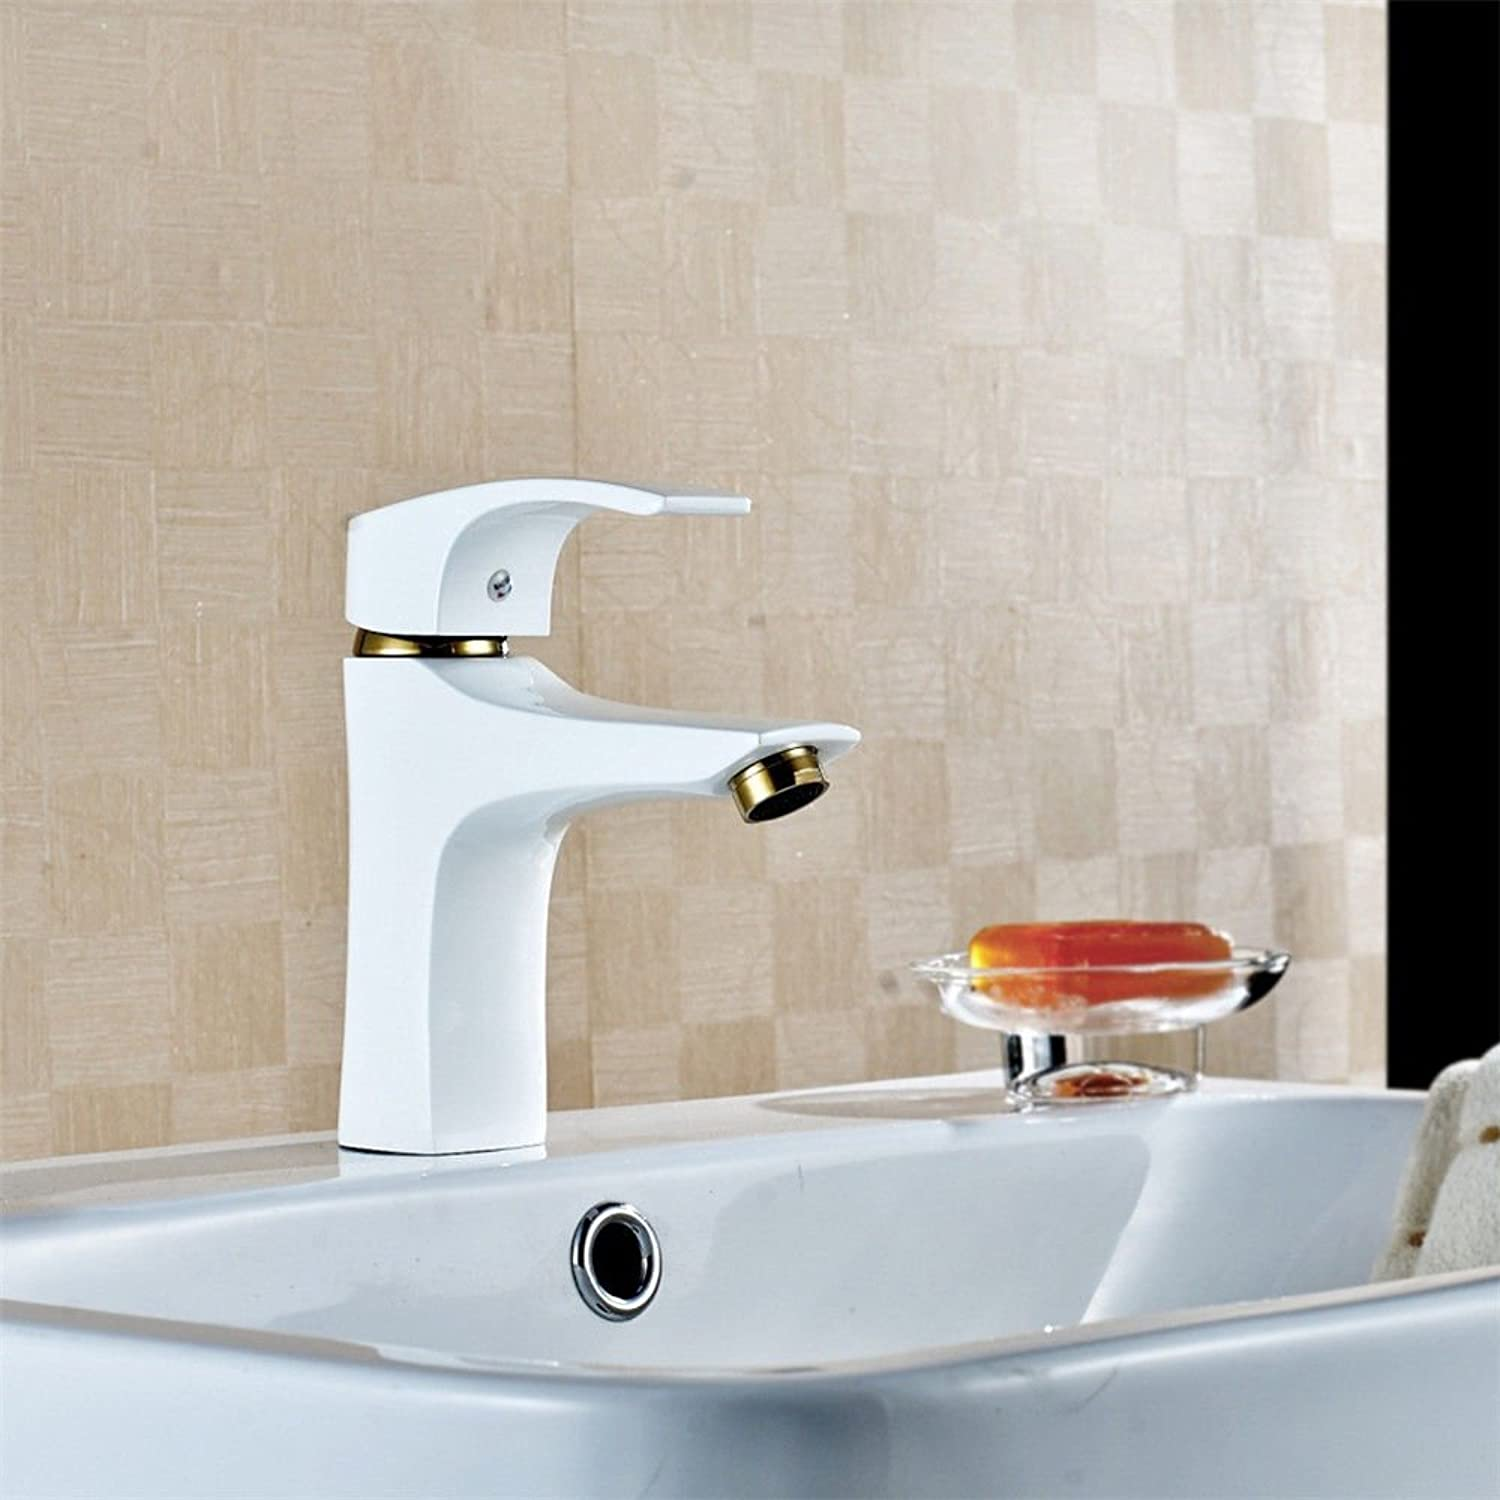 ETERNAL QUALITY Bathroom Sink Basin Tap Brass Mixer Tap Washroom Mixer Faucet The copper grill white finish faucet single type water taps Kitchen Sink Taps